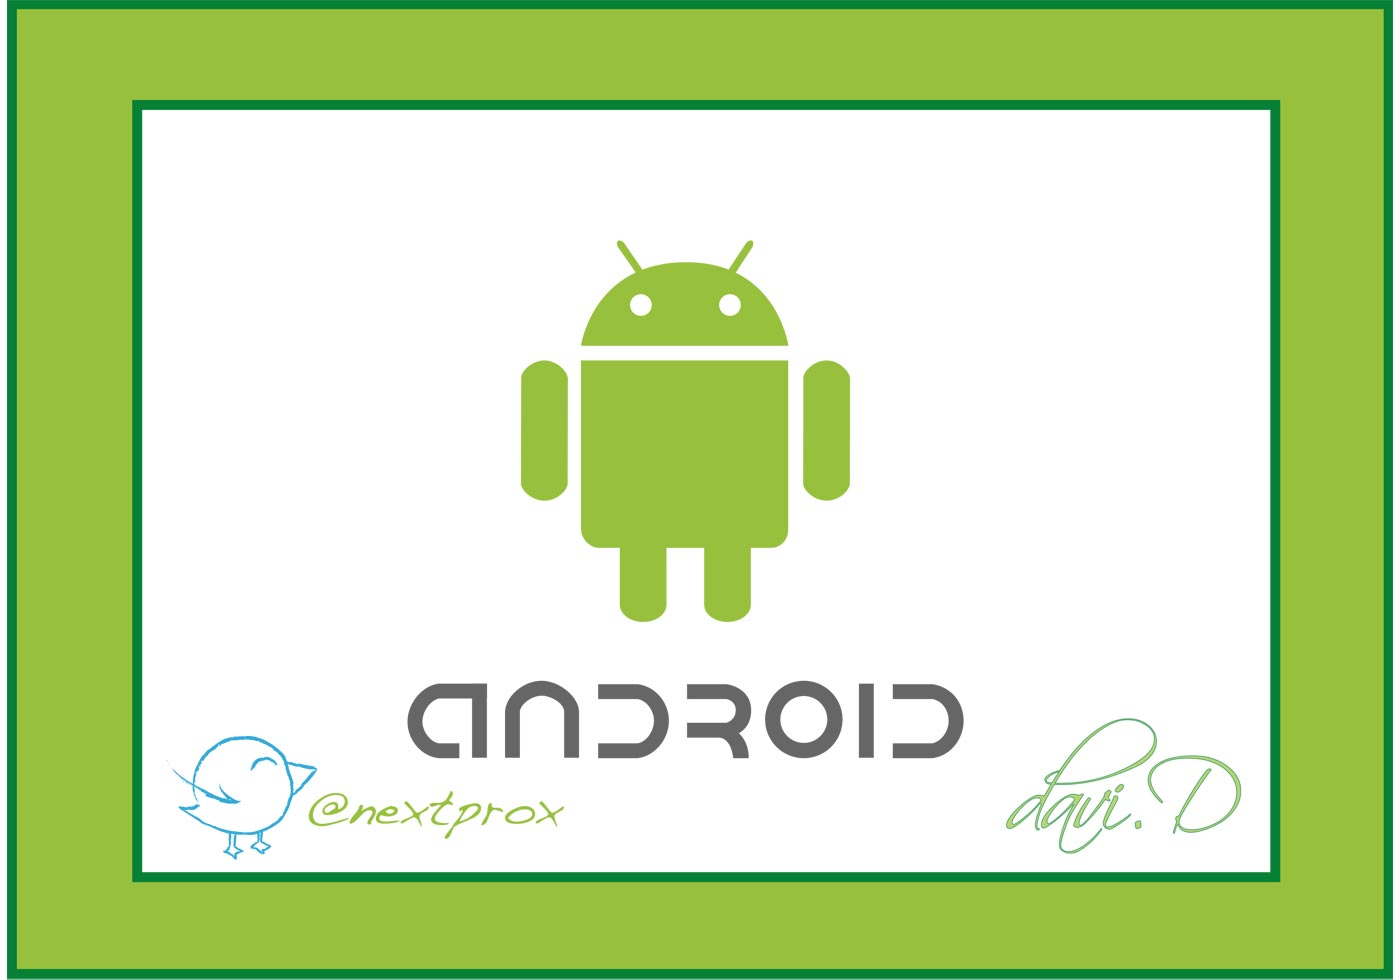 Android Robot Vector Free Vector Art At Vecteezy